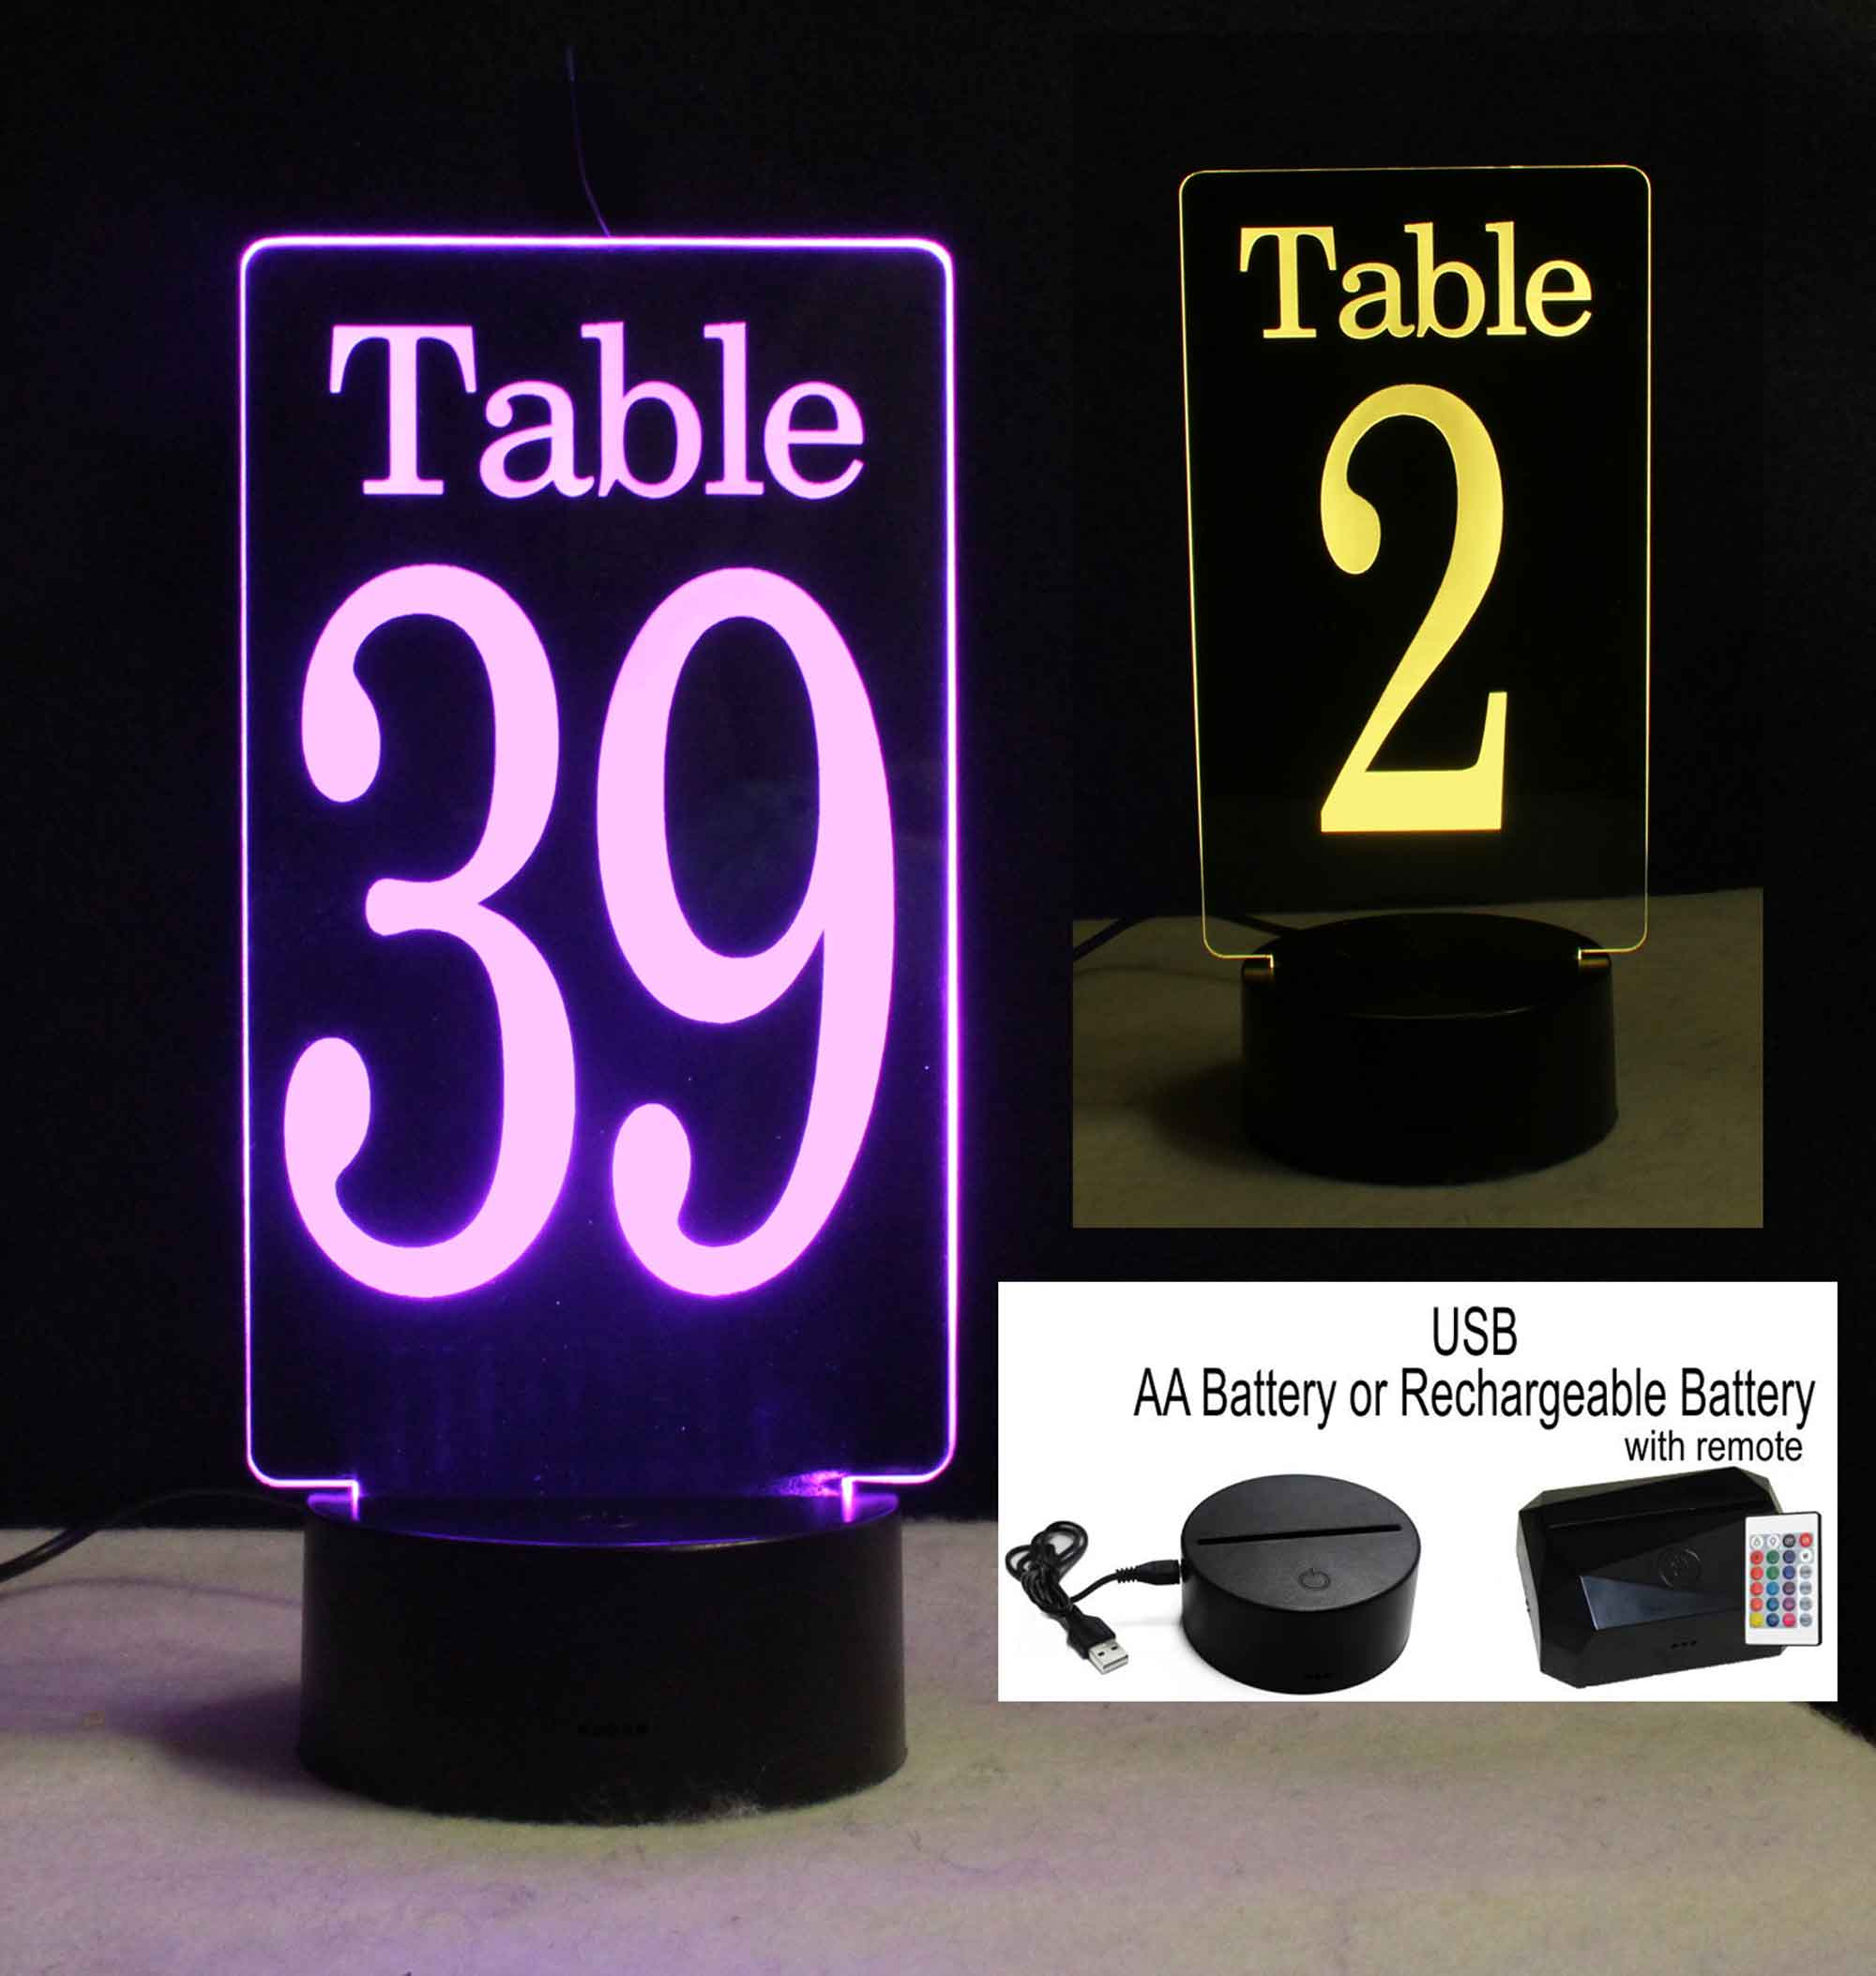 Lighted Table numbers, Battery operated USB